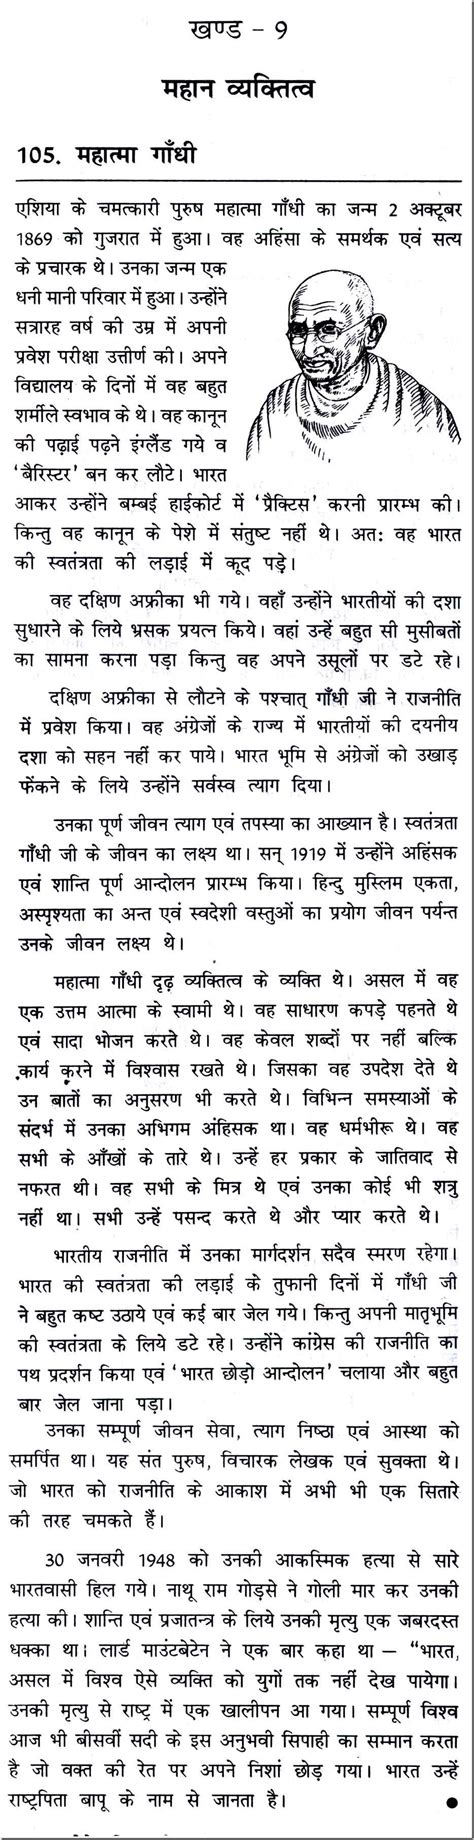 biography of mahatma gandhi written in hindi language essay on mahatma gandhi in hindi